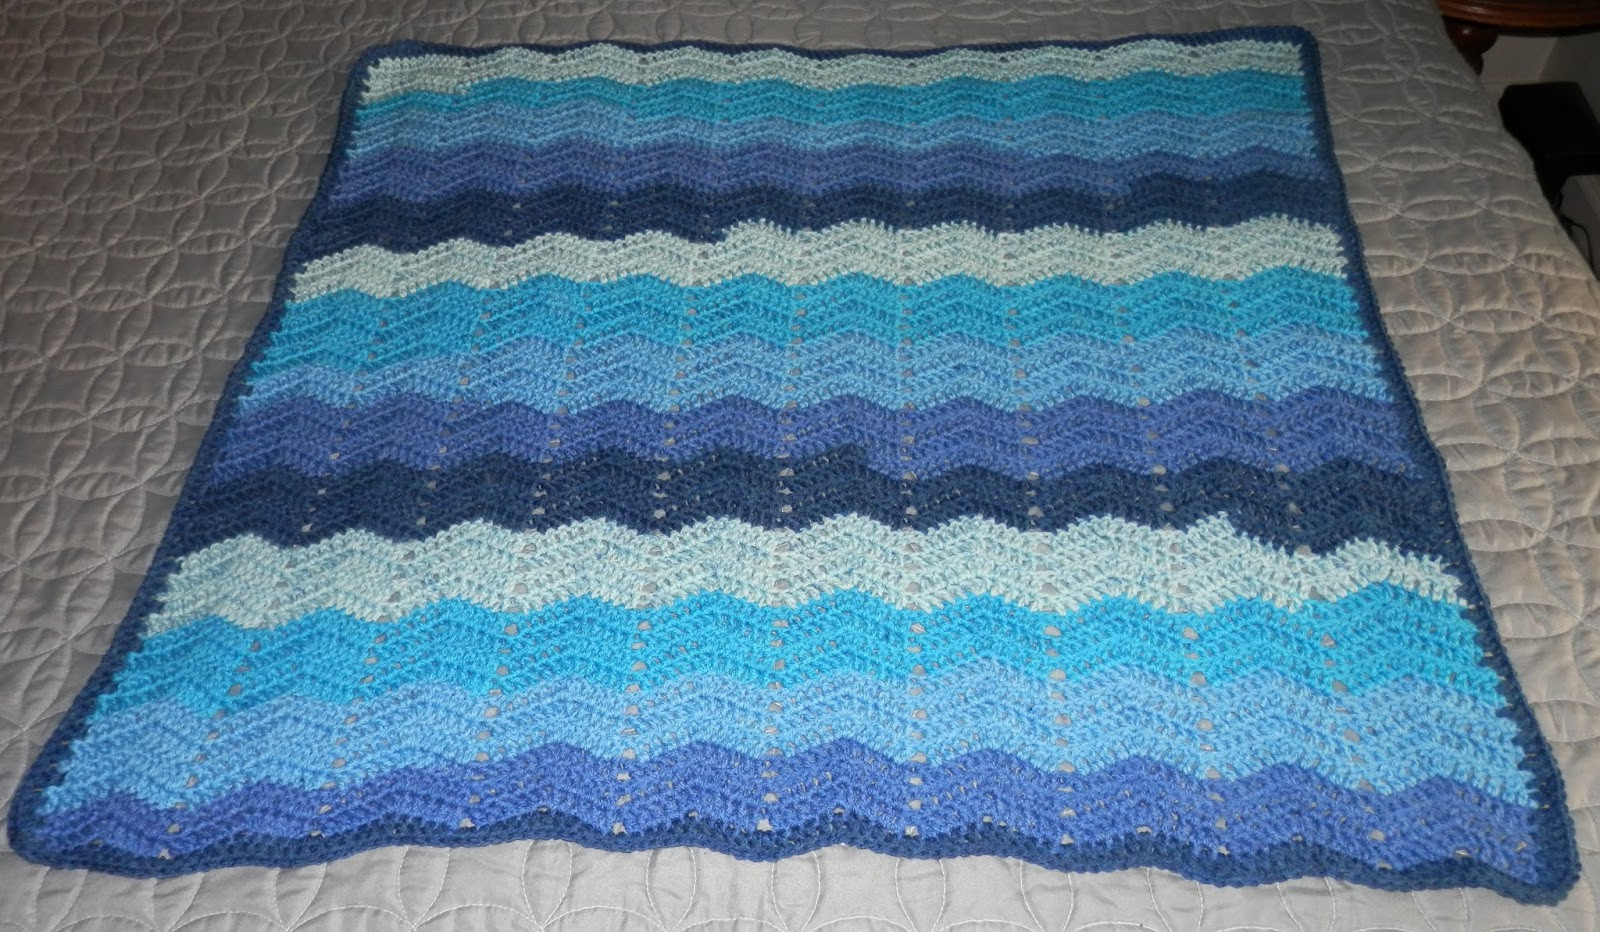 blueberry cheesecake baby blanket